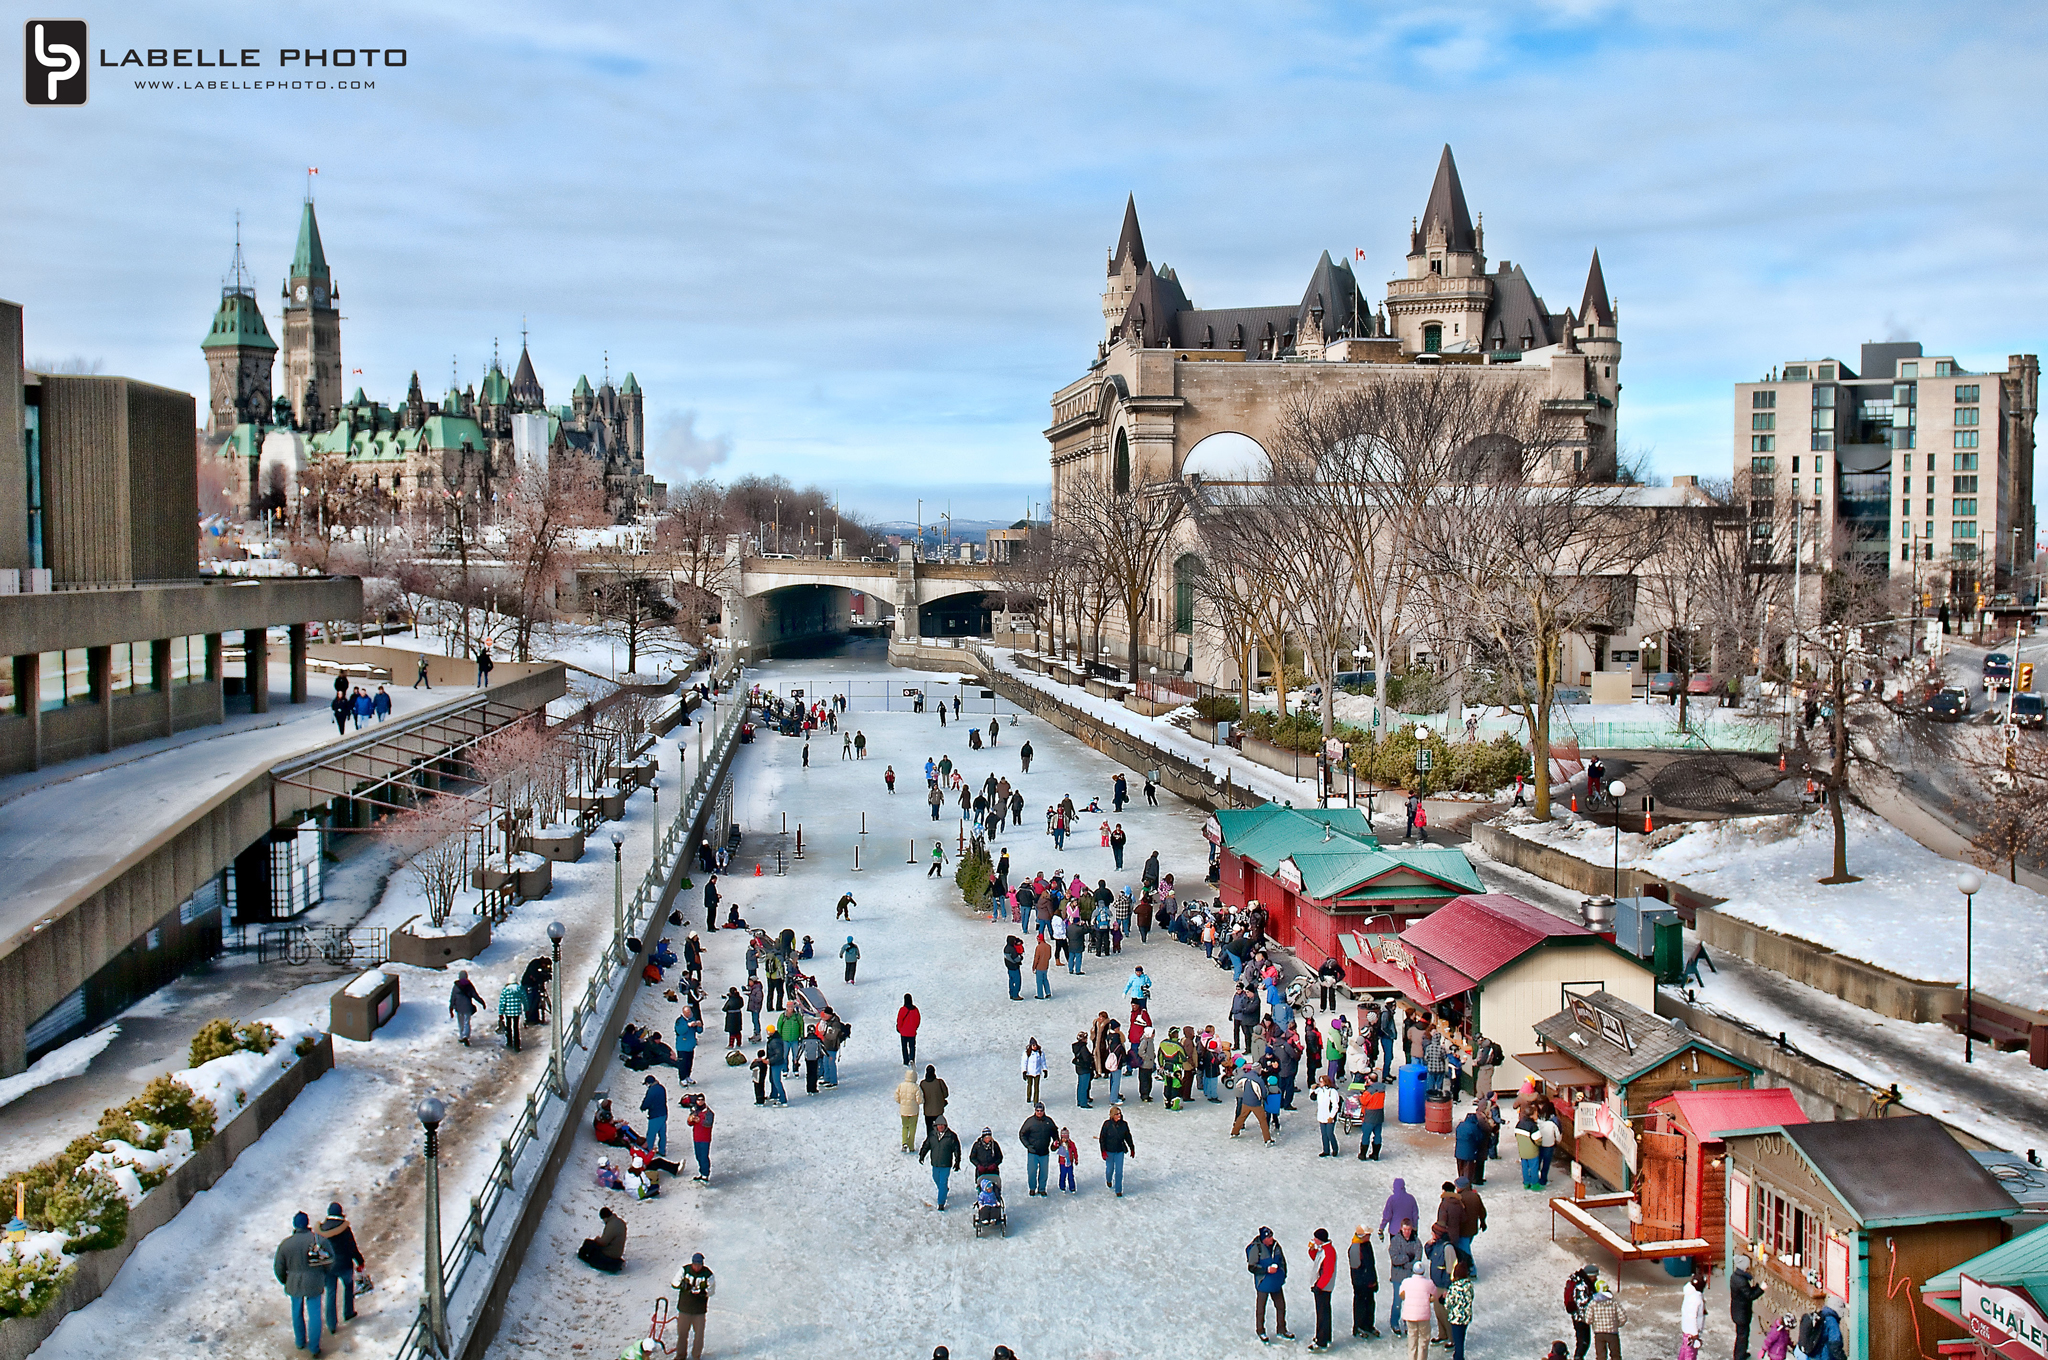 ottawa s rideau canal skateway opens for 2015 season labelle photo. Black Bedroom Furniture Sets. Home Design Ideas